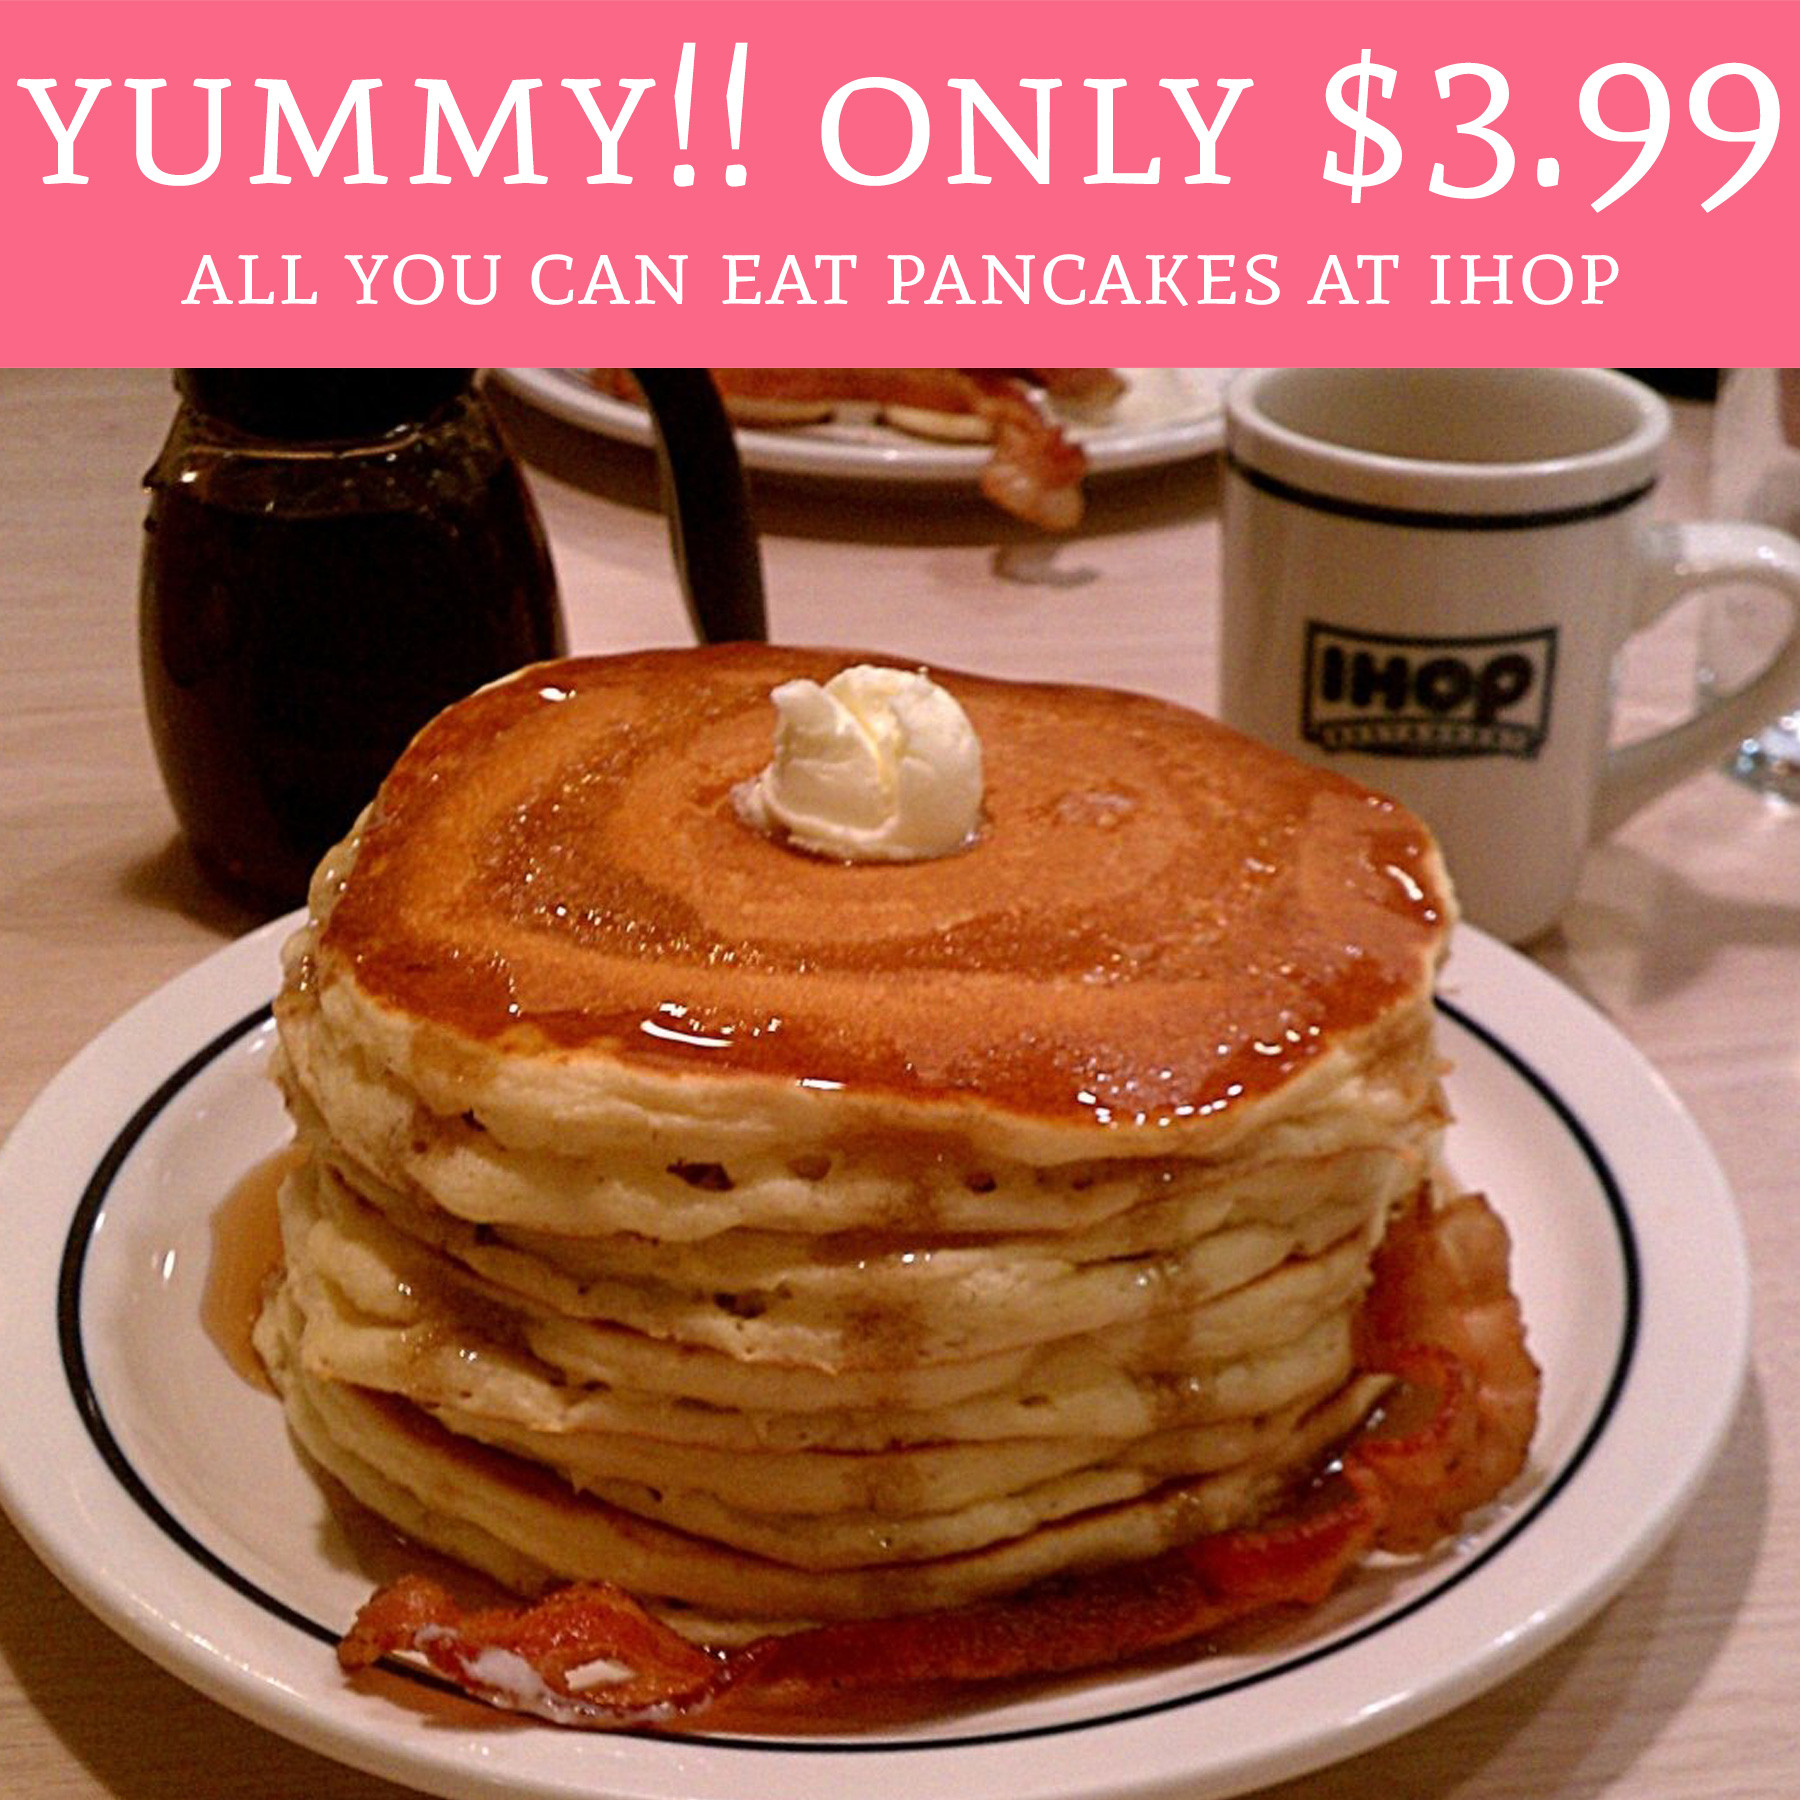 Ihop All You Can Eat Pancakes 2018  HOT ly $3 99 All You Can Eat Pancakes IHOP Deal